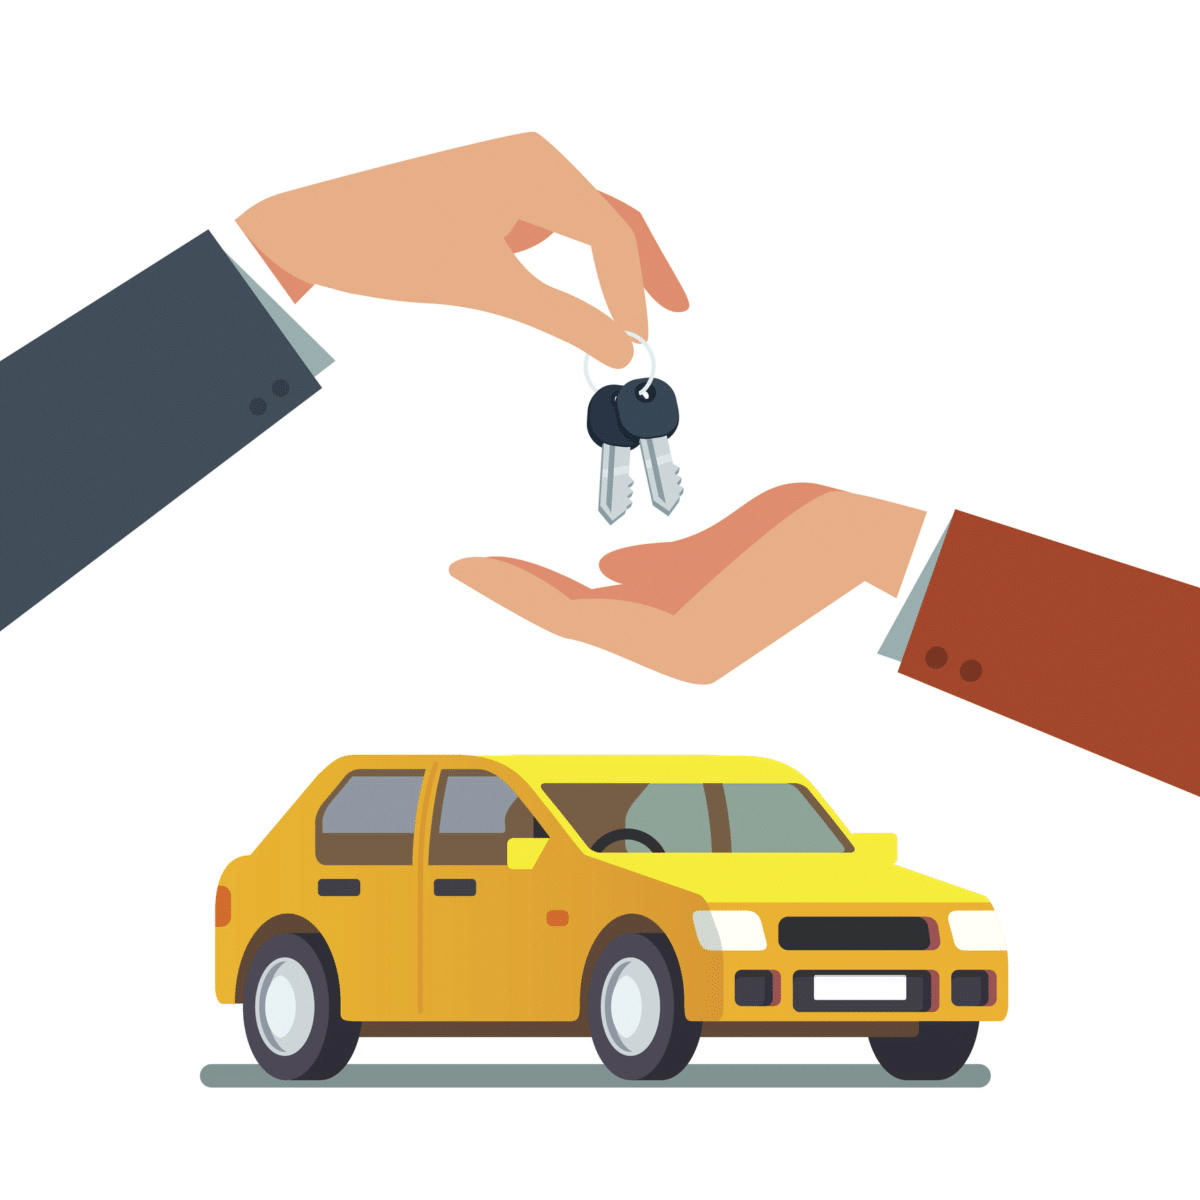 buying a used car: graphic of yellow car and one hand giving another person's hand a car key.